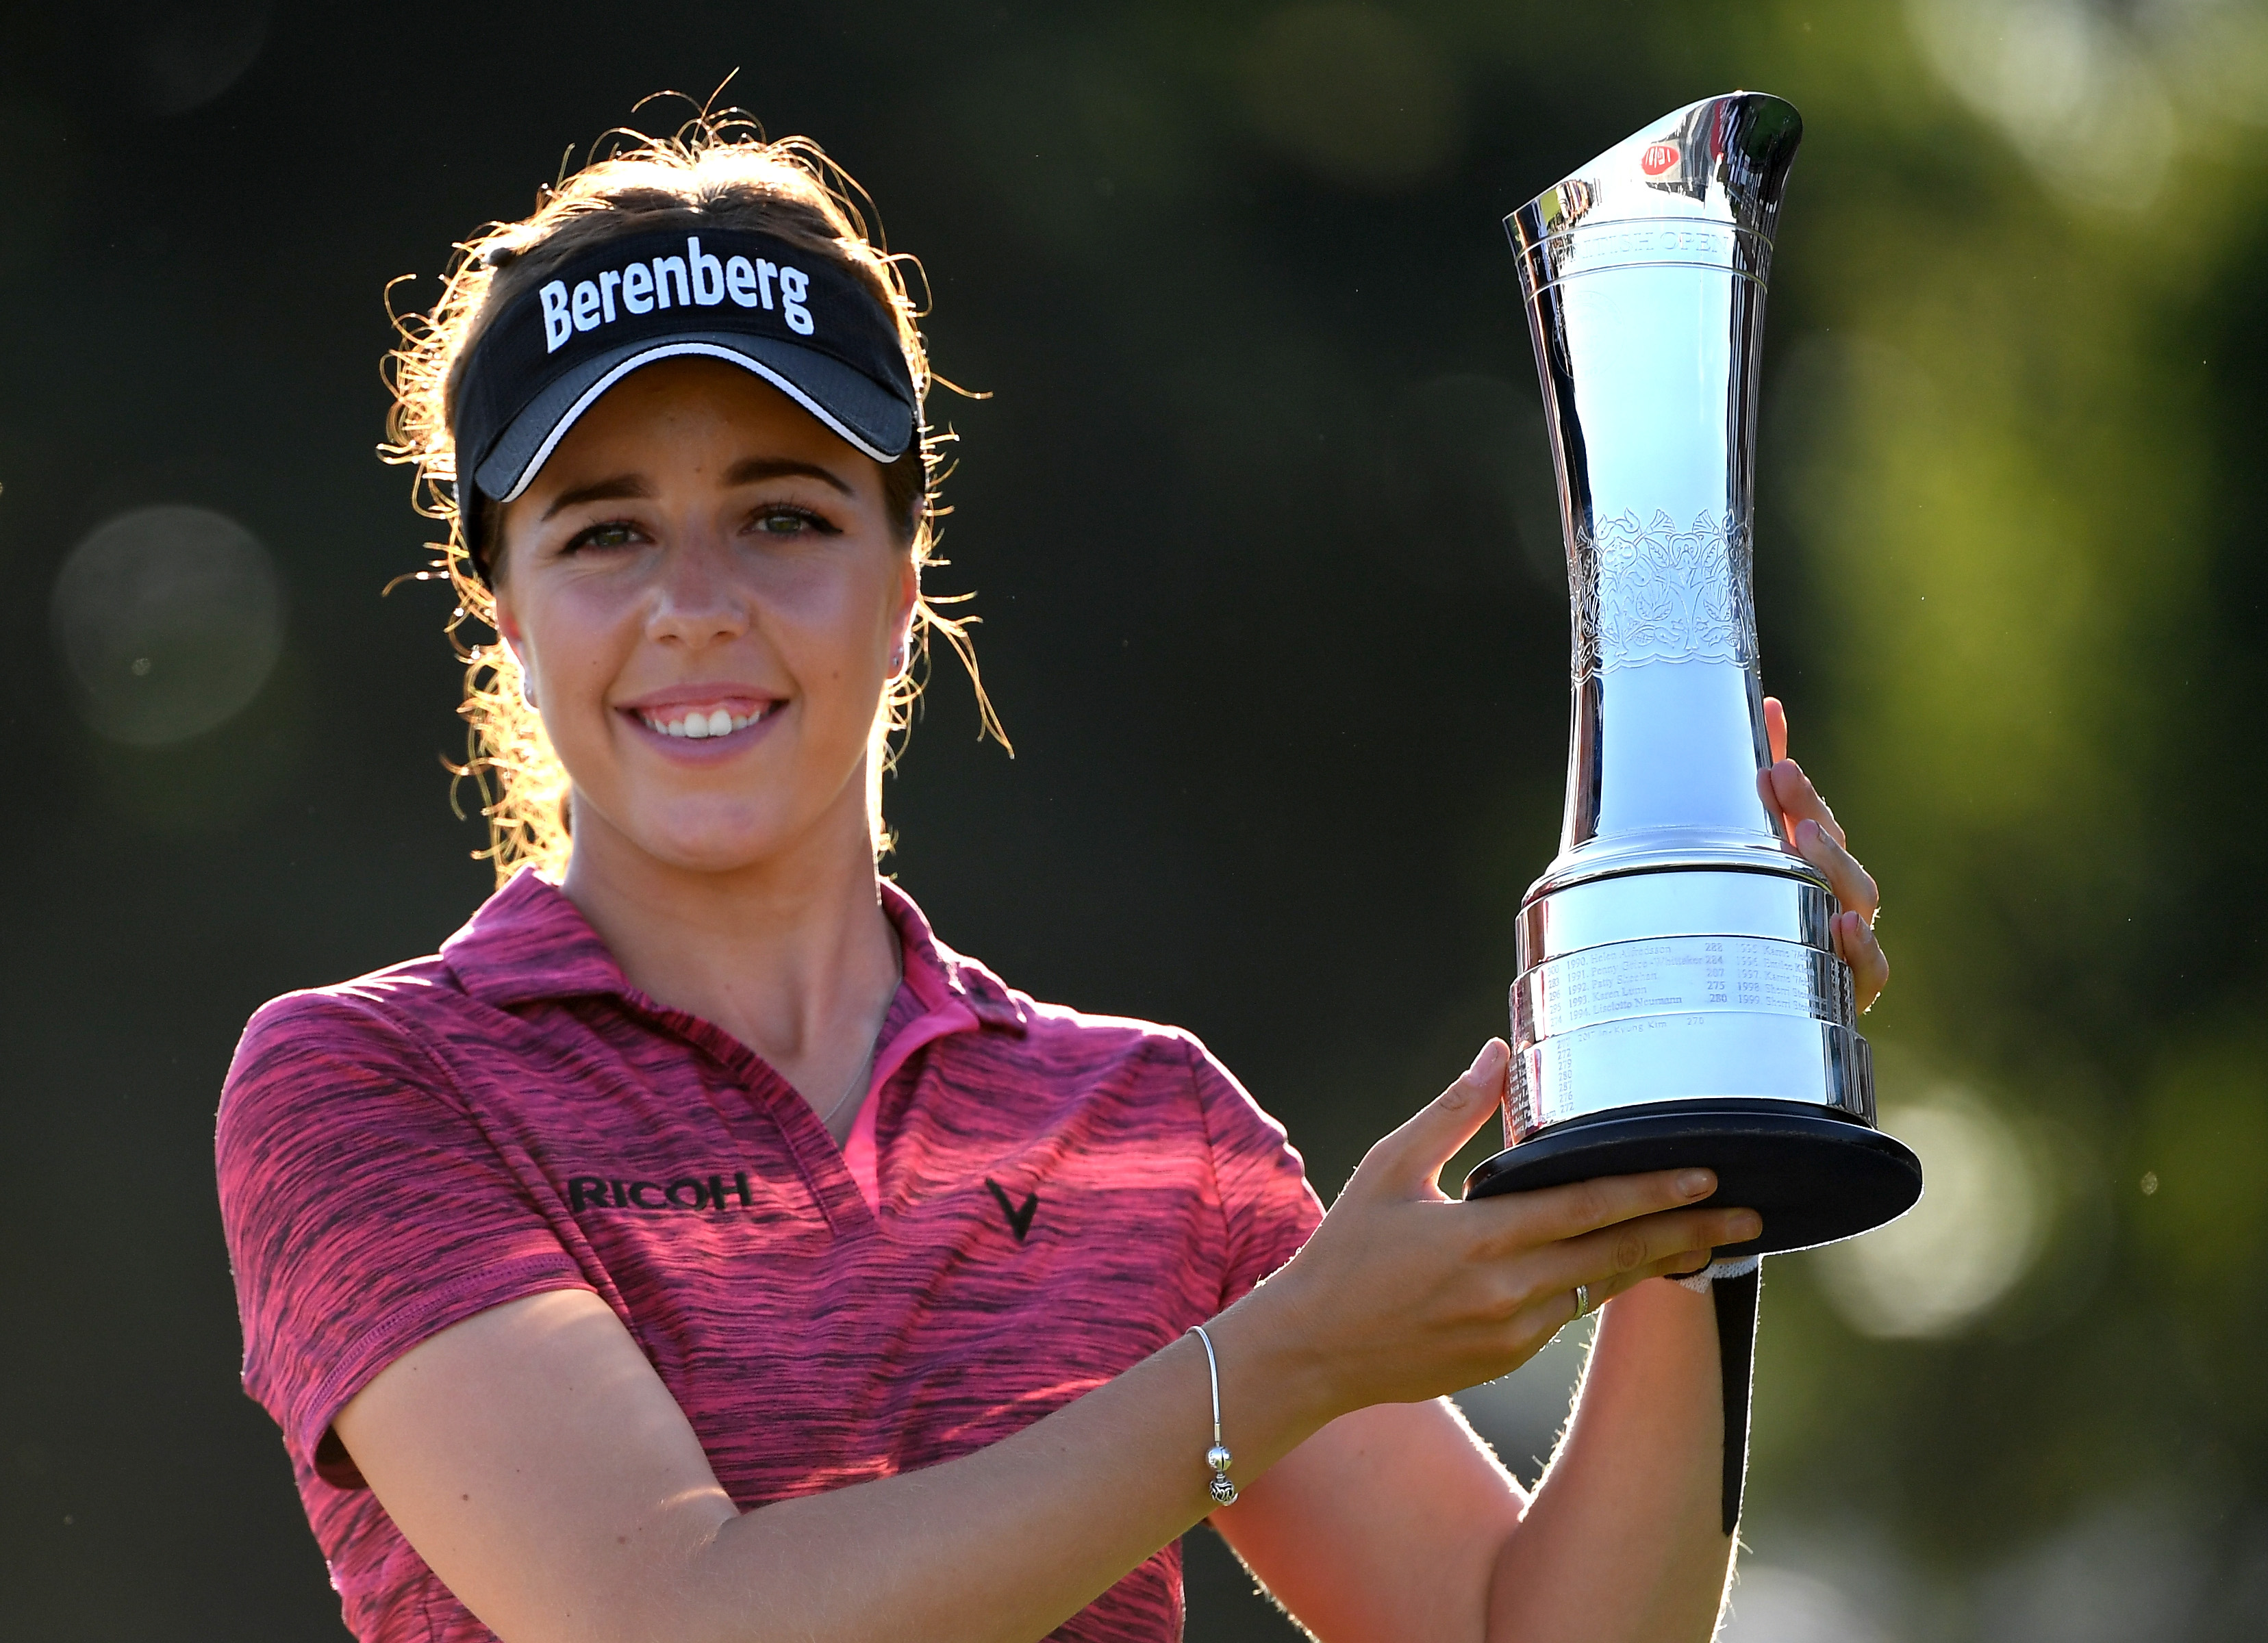 Georgia's major win is perfect end for Women and Girls' Golf Week